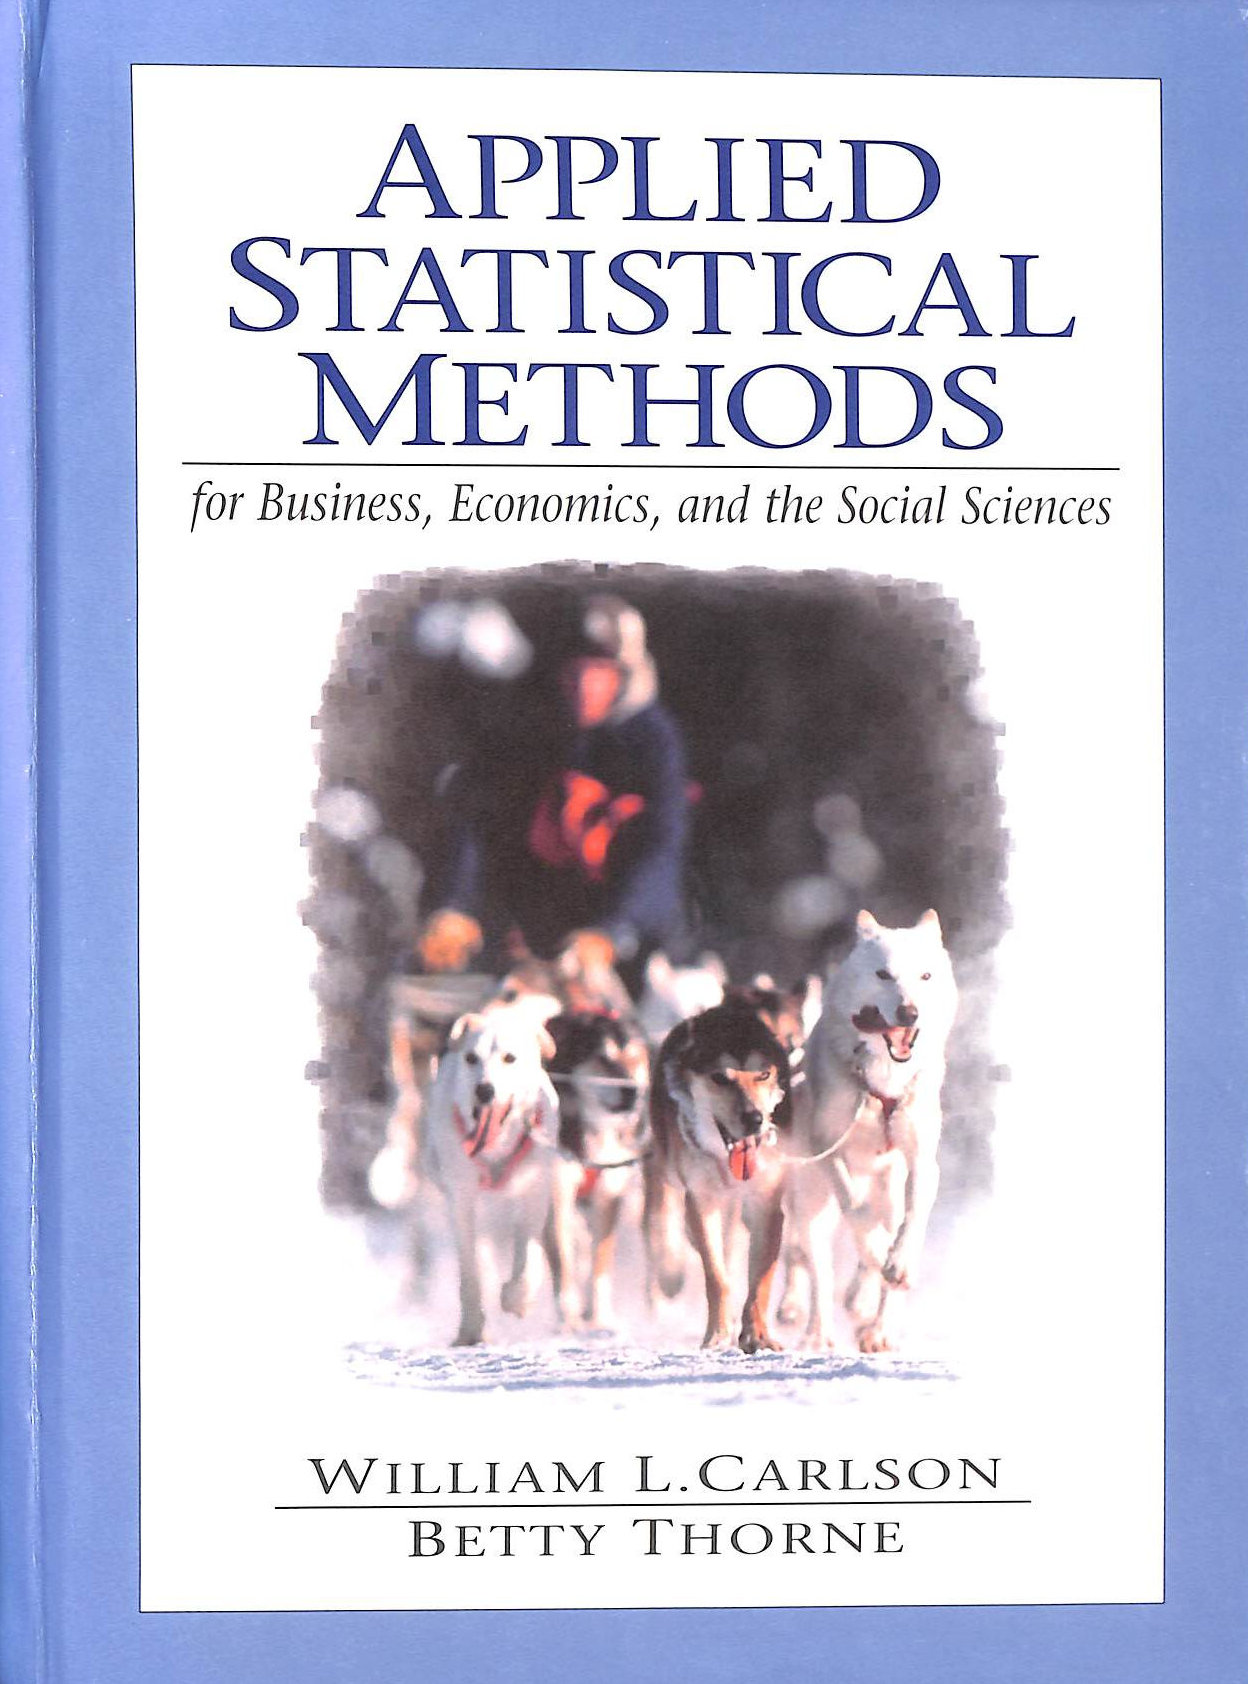 Image for Applied Statistical Methods for Business, Economics, and the Social Sciences